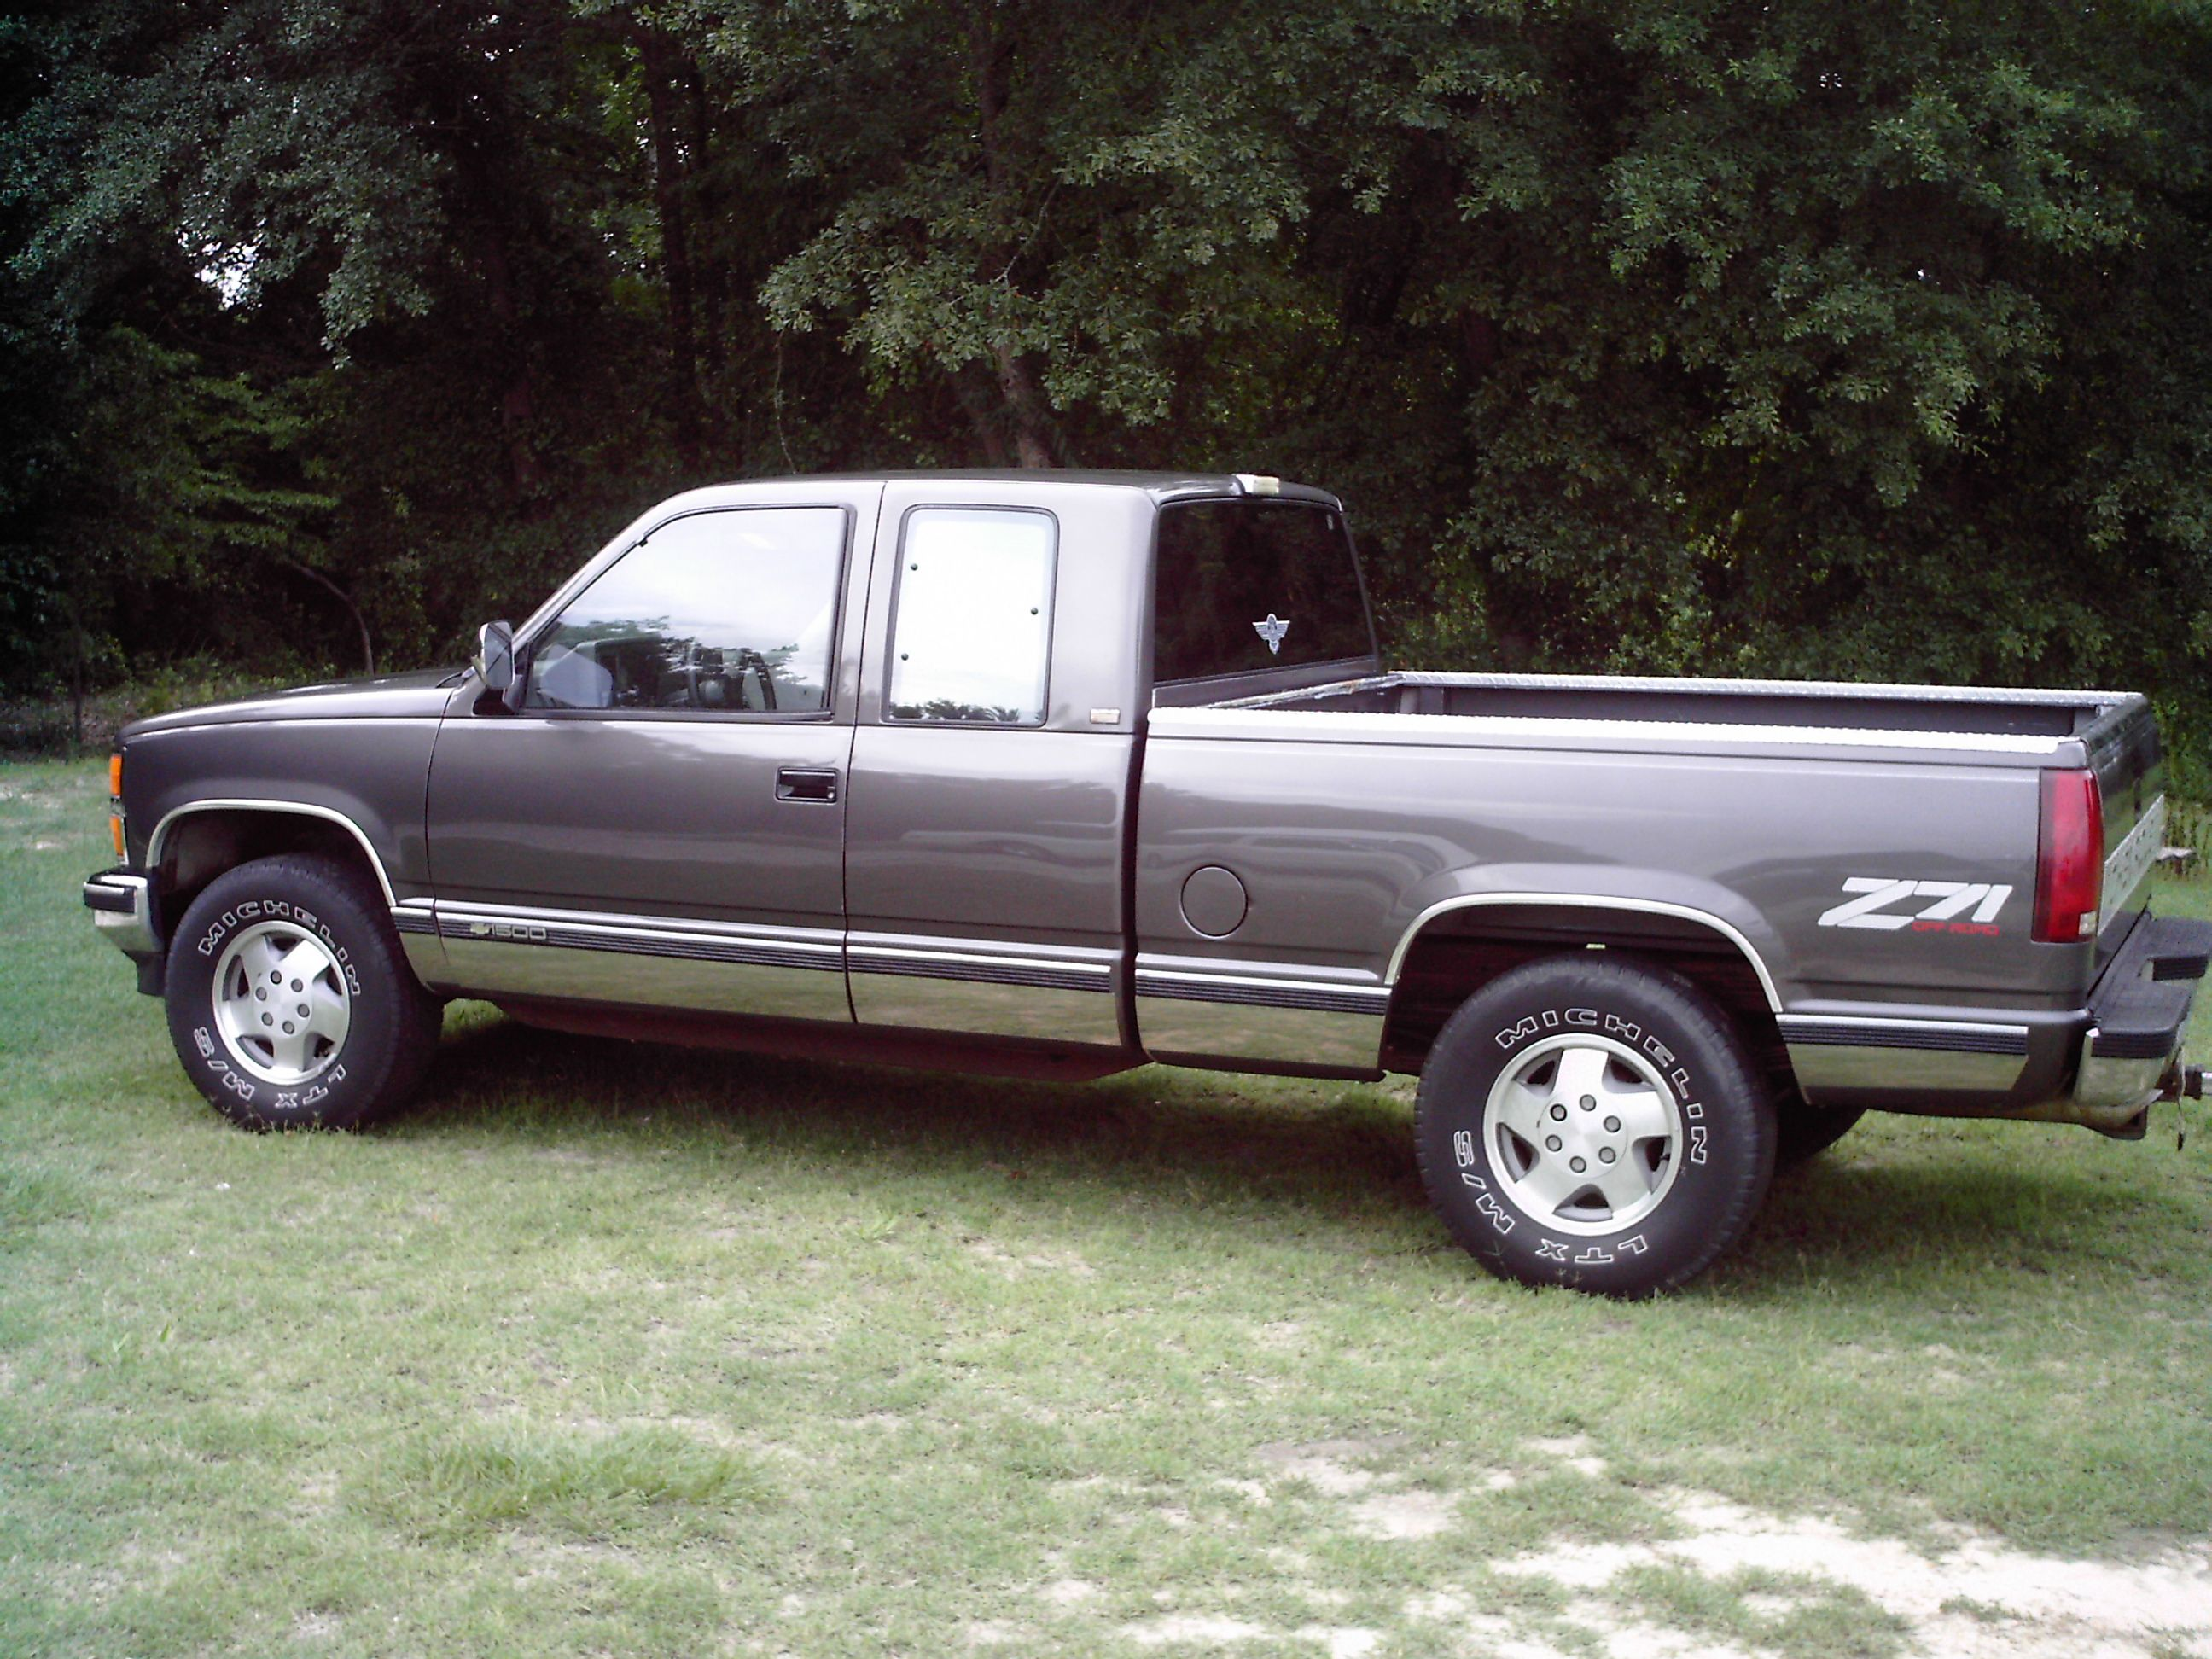 hight resolution of grey 1992 z71 chevy this was my daddy s ol truck i wish we still had it i want a truck just like this one but jacked up n with some big